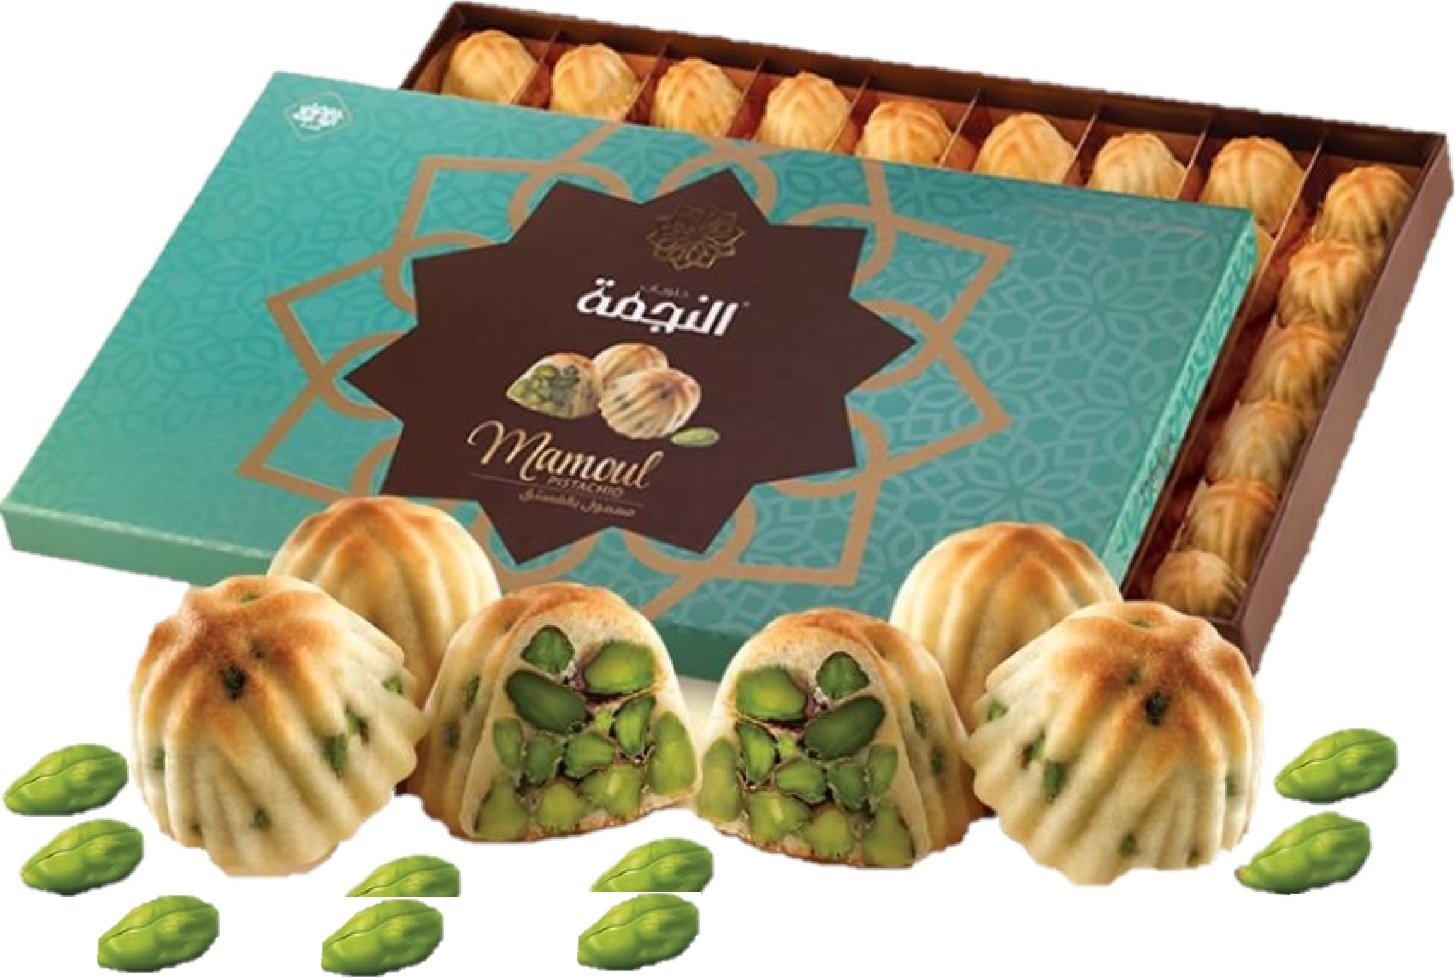 M503 - Maamoul Pistachio Sweet Cookies (56 Pieces, 36 Oz Net, 3.5 lbs Gross, Gift Box 16 inches x 10 inches x 1.5 inches) (Oglu) (Maamoul Cookies Pistachio, 36 Oz Net)